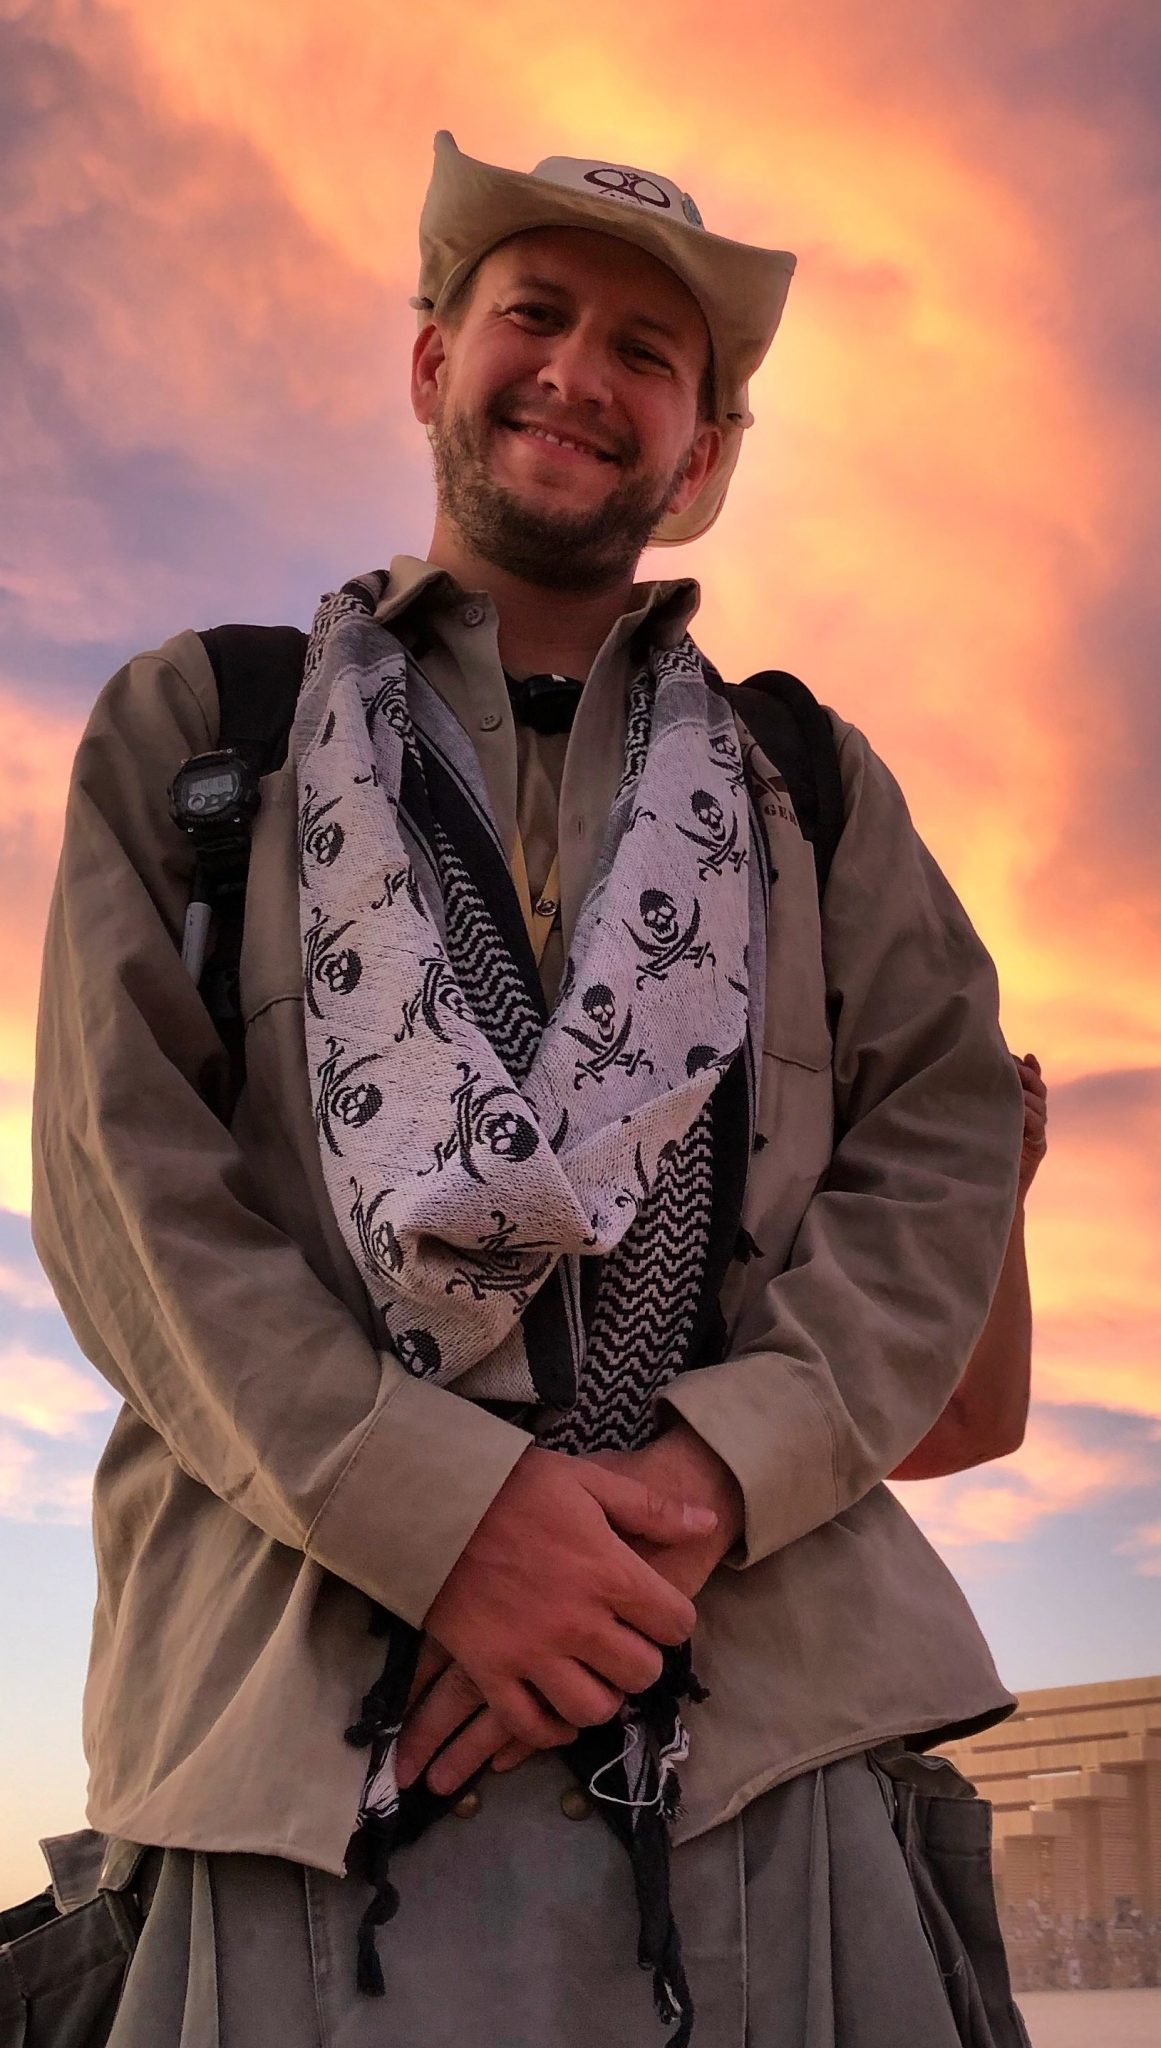 In 2019, Nick became Black Rock Ranger Saint Nick. Rangering allows him to combine so many of his favorite activities: participating with interactive art, meeting interesting global travelers, community development, event operations, and gifting selfless service.